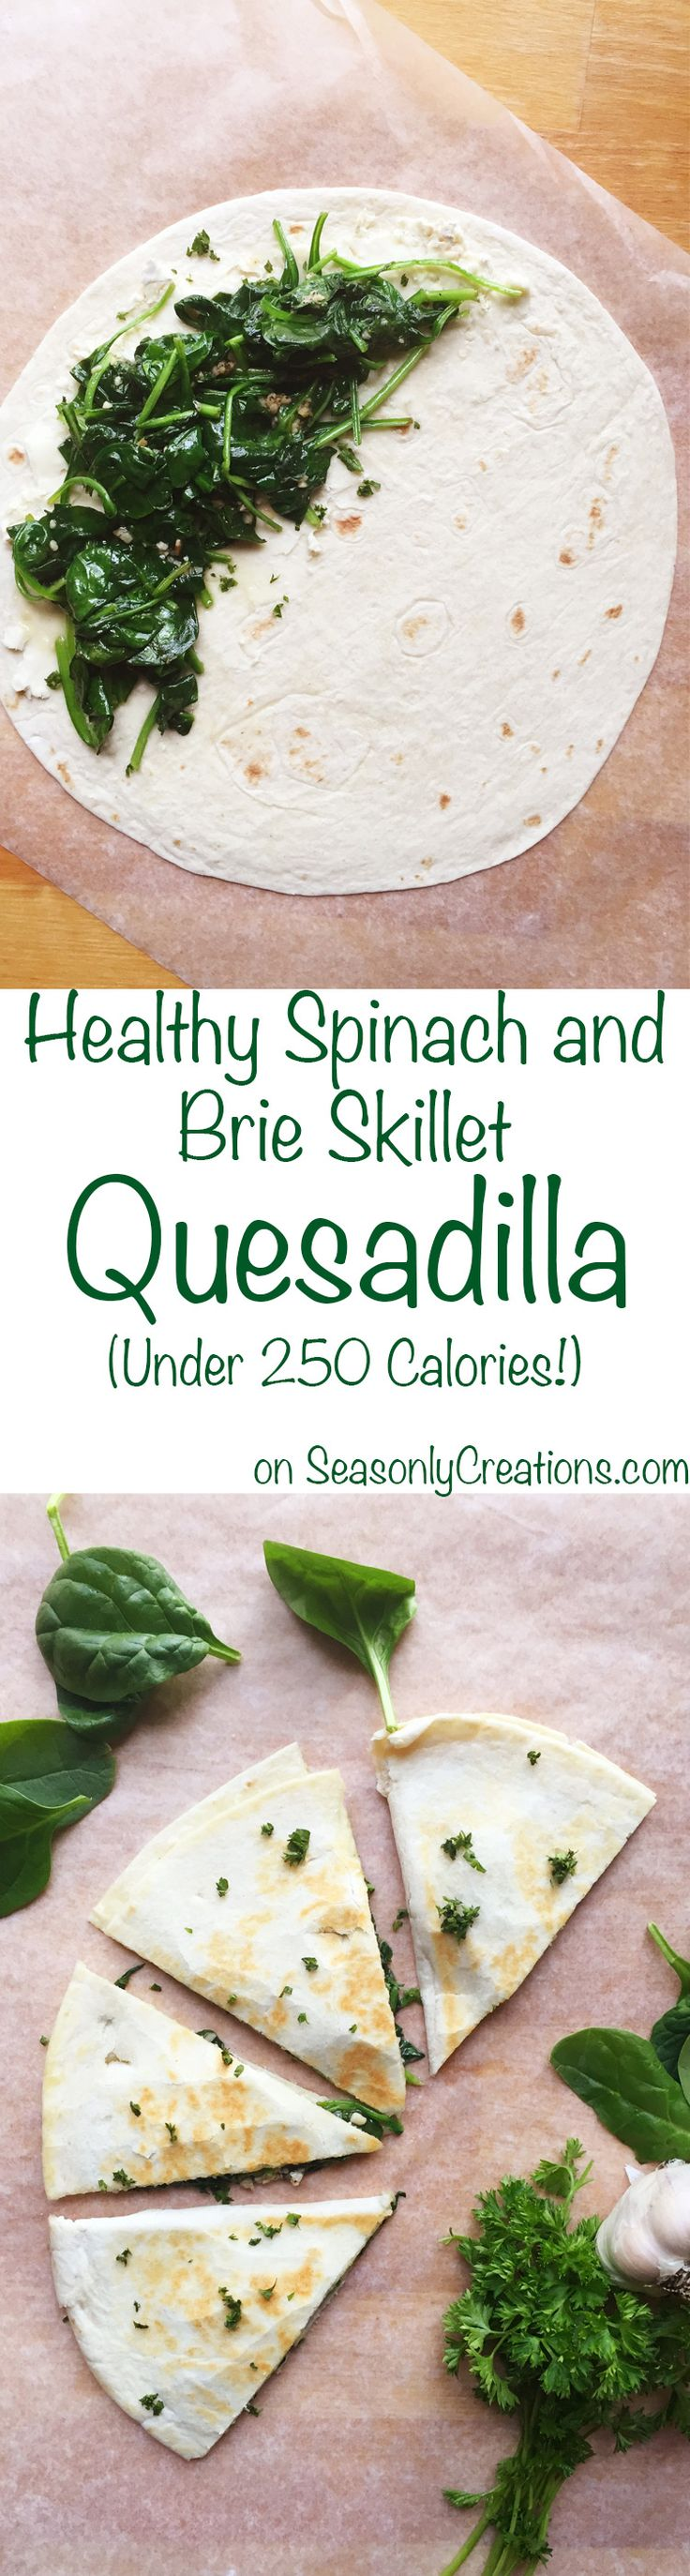 Healthy Spinach and Brie Skillet Quesadilla, Under 250 Calories. This crunchy, cheesy, flavorful recipe is perfect if you're looking for a healthy, single serving sized meal you can make make in just one skillet, no fancy equipment necessary (plus, it's a nice vegetarian recipe you can add to your collection)! Enjoy as a snack, for breakfast, as an appetizer, or whenever! | SeasonlyCreations.com | @SeasonlyBlog